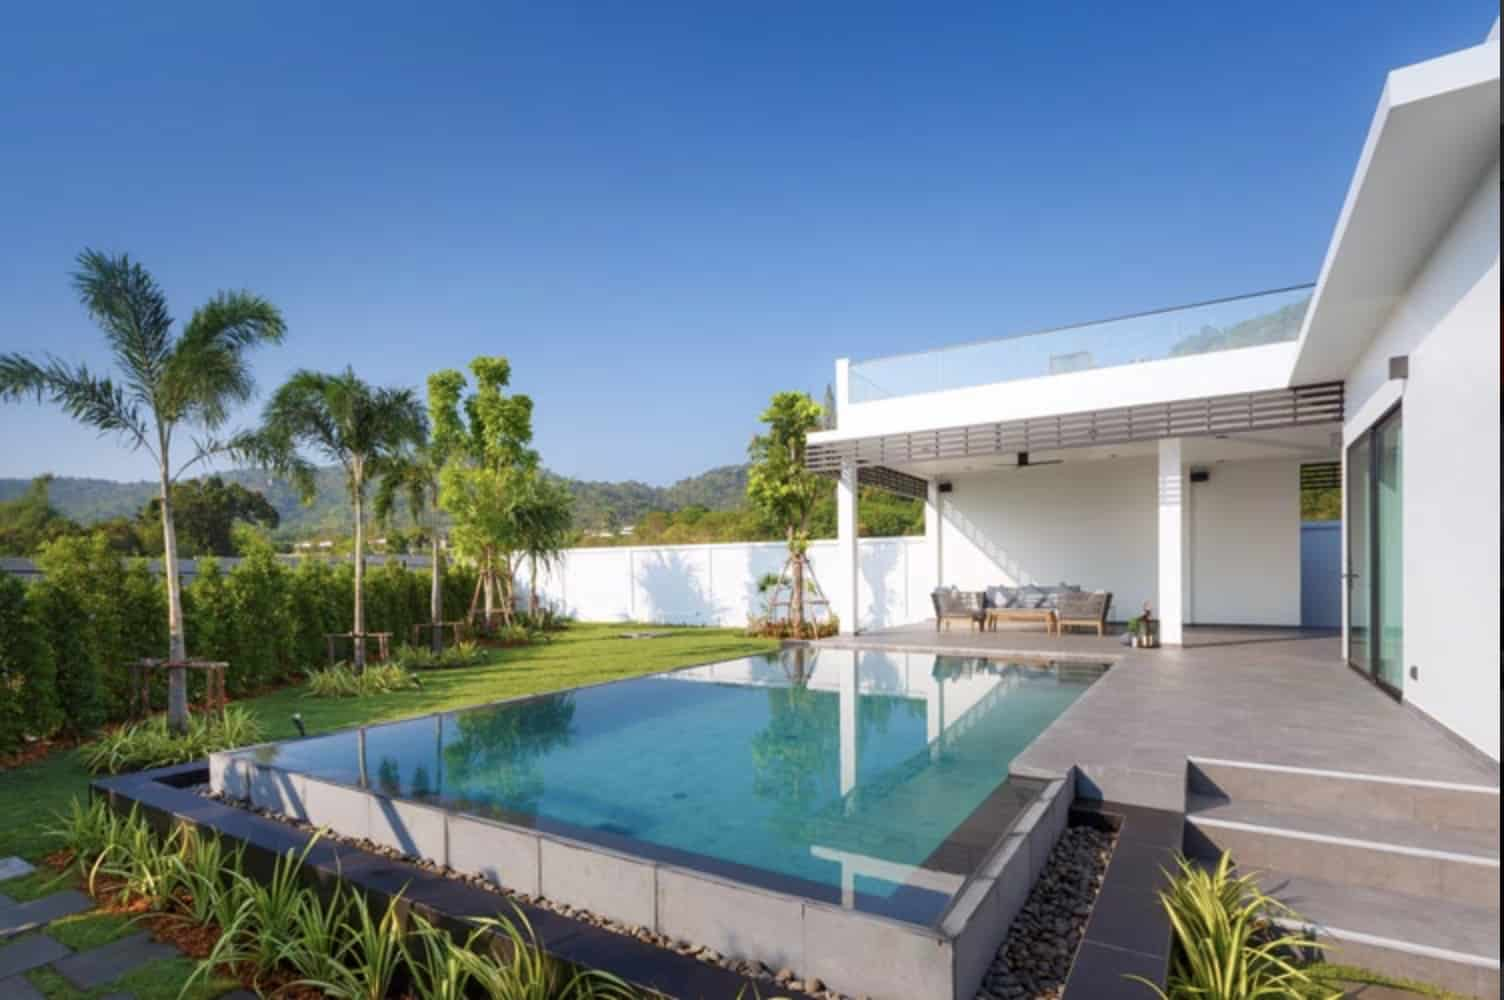 Hua Hin Property For Sale   Sivana Hideaway Hua Hin Real Estate For Sale   Luxury Homes For Sale In Hua Hin   Hua Hin Real Estate Sales